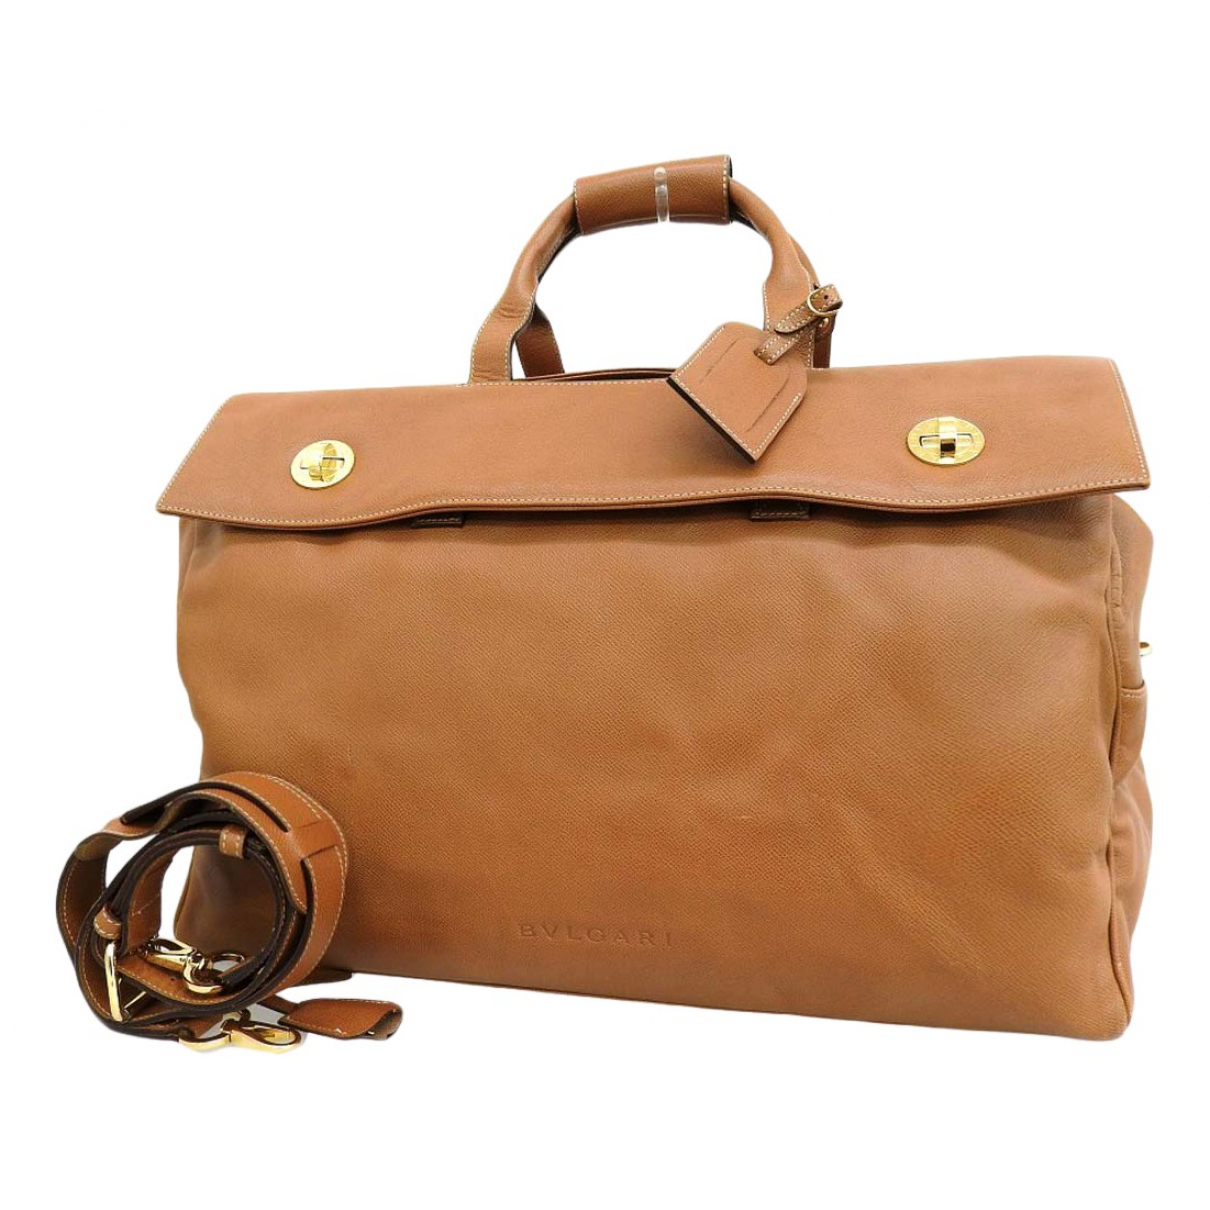 Bvlgari \N Brown Leather handbag for Women \N